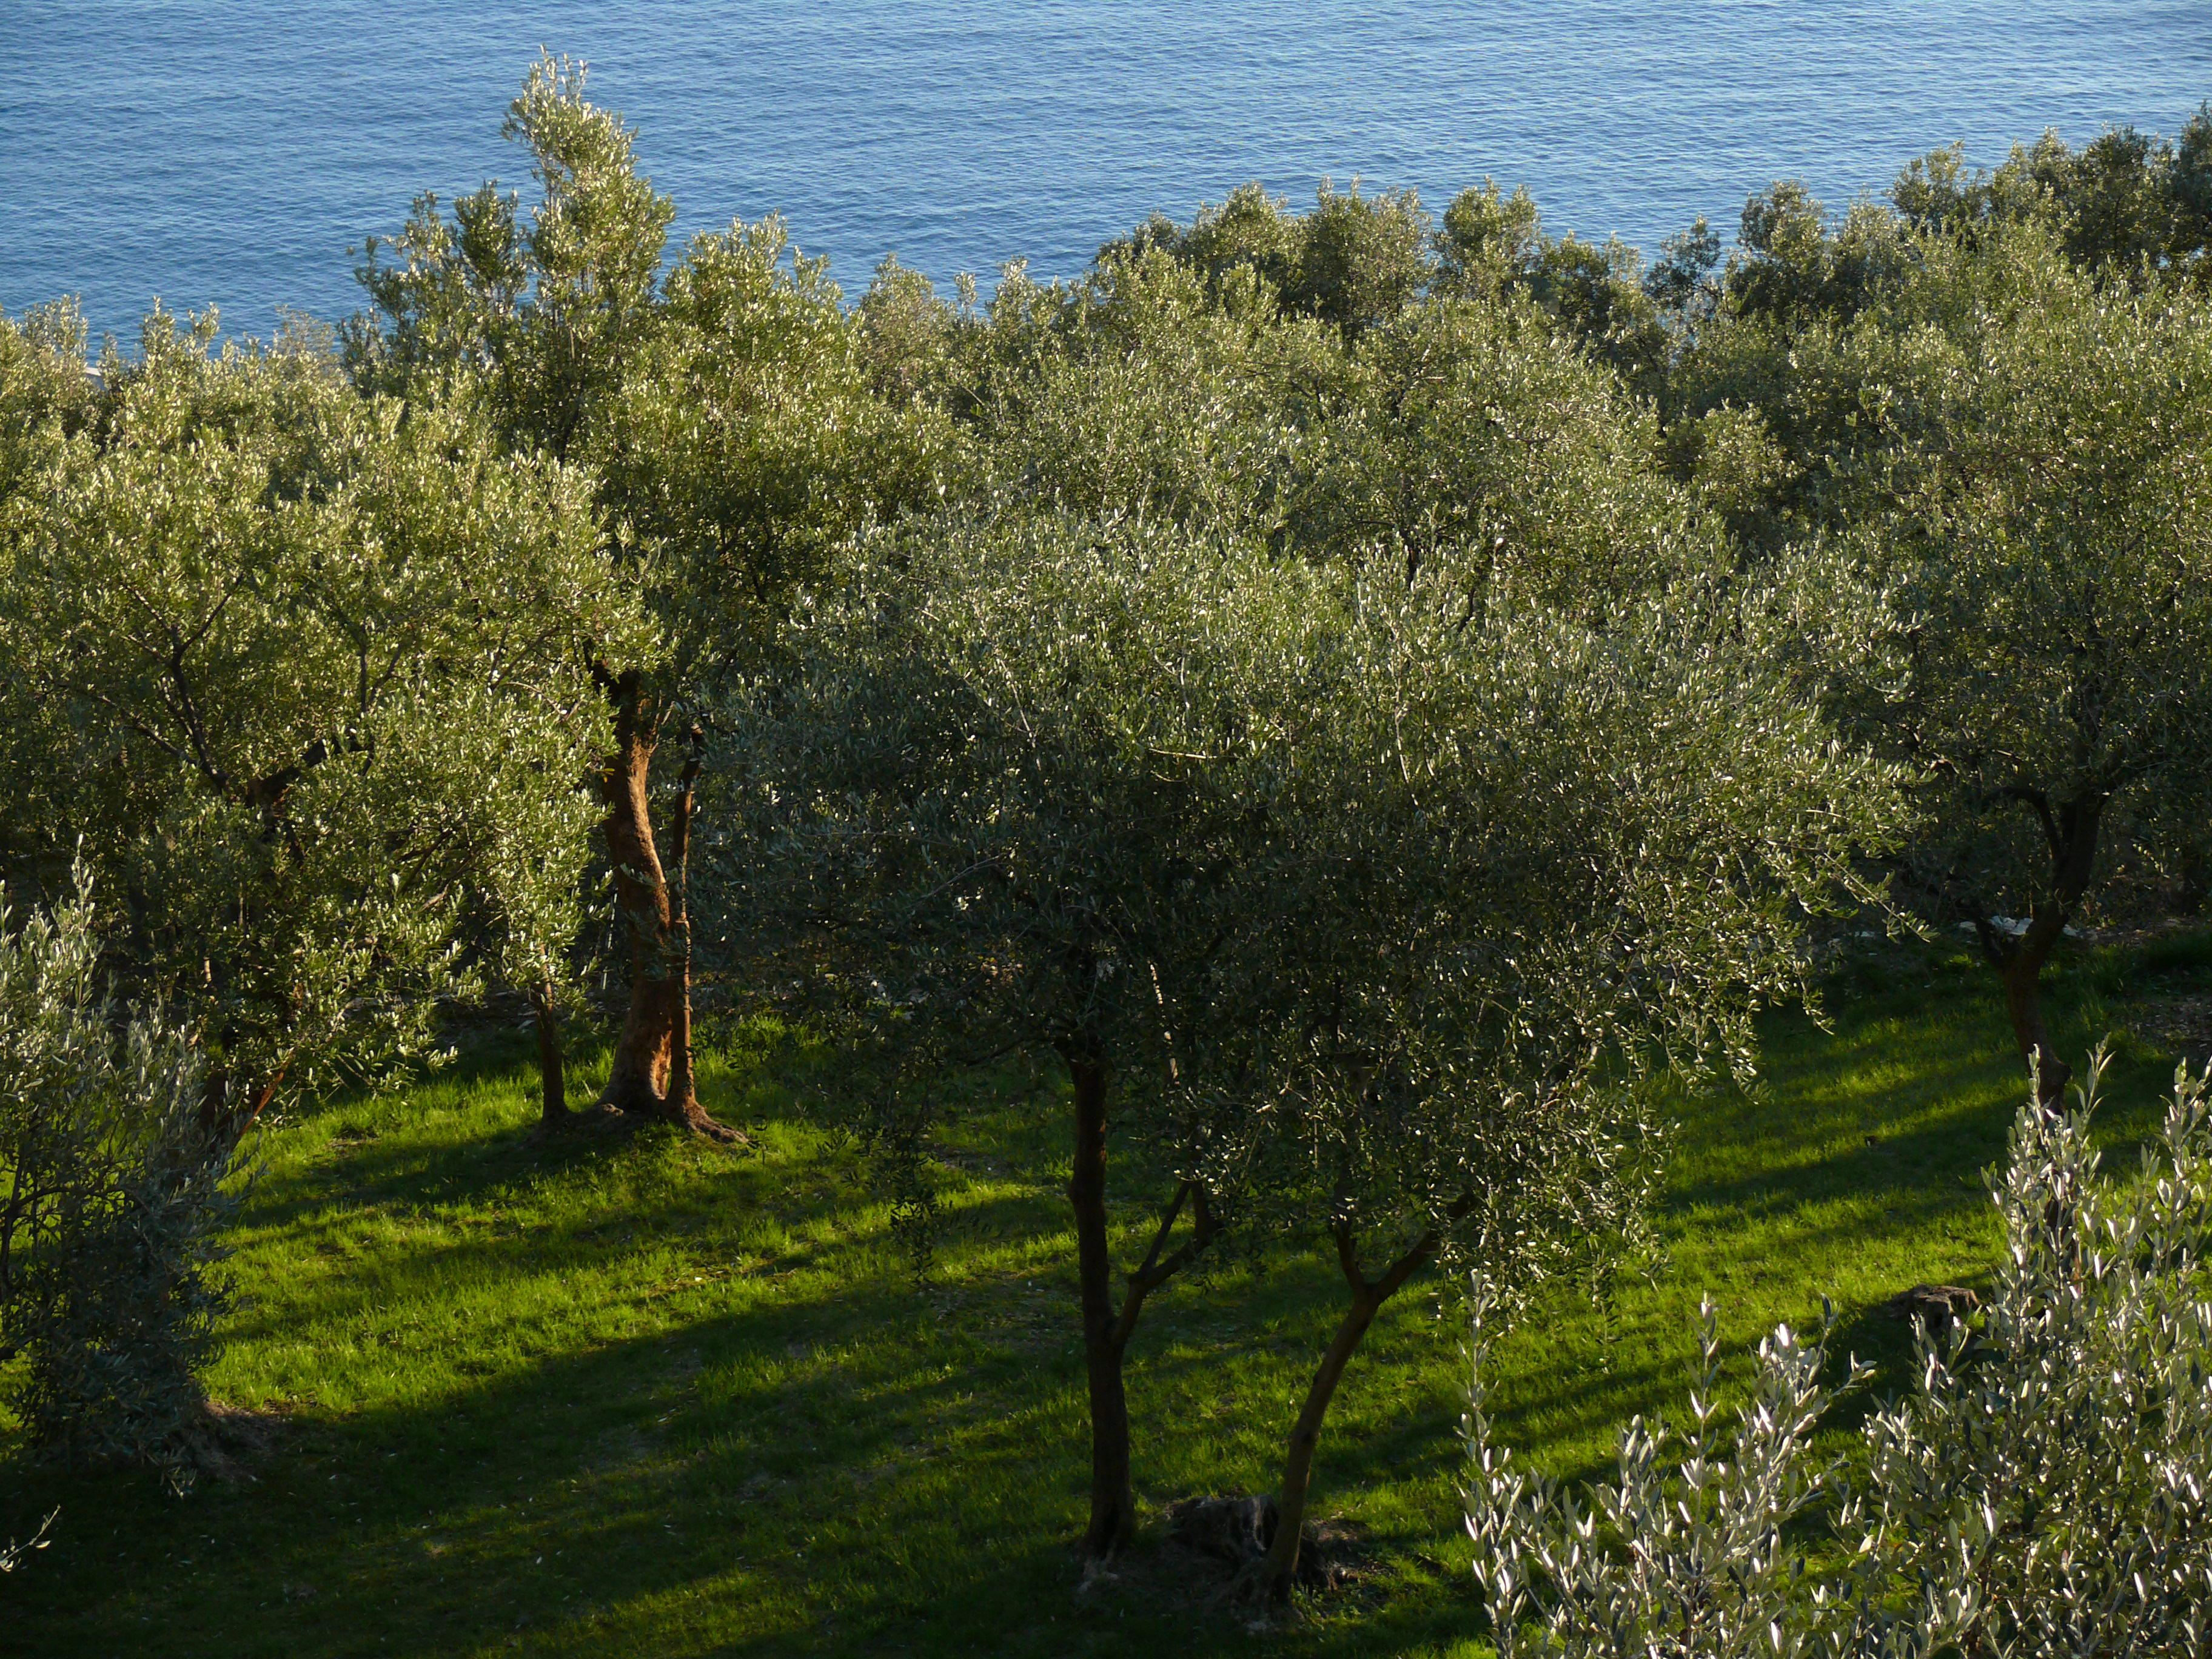 Olive trees on the background of the sea in Liguria Italy 3648x2736